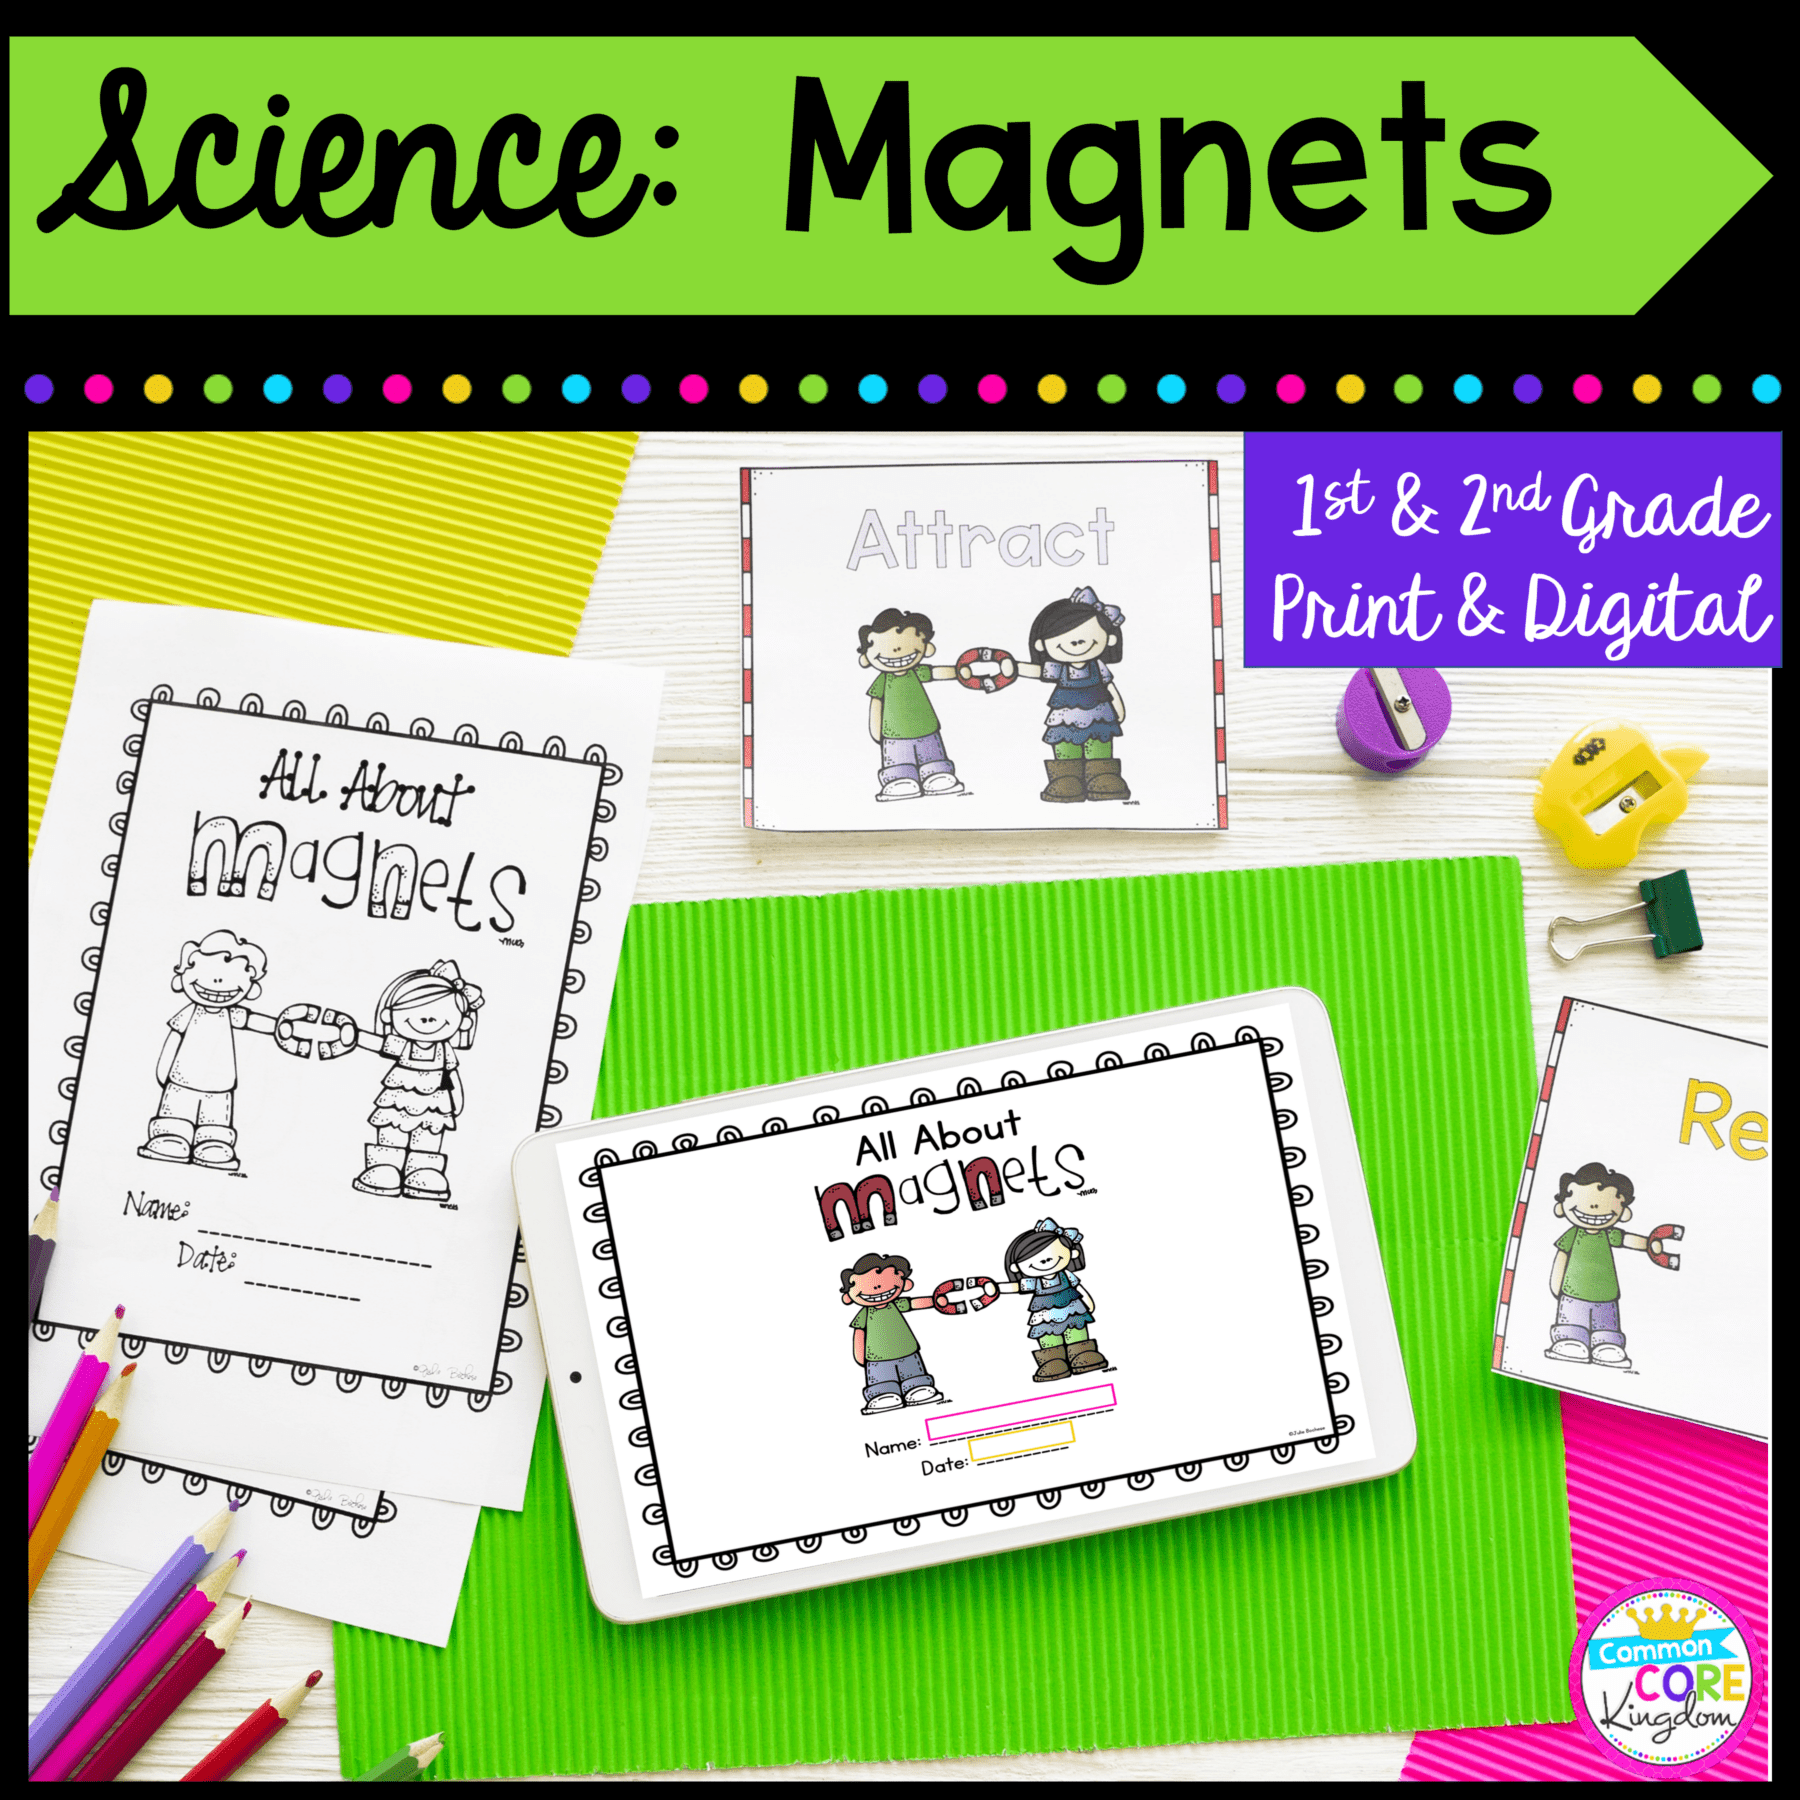 hight resolution of Magnets Mini Unit- 1st \u0026 2nd Grade - Printable \u0026 Digital   Common Core  Kingdom